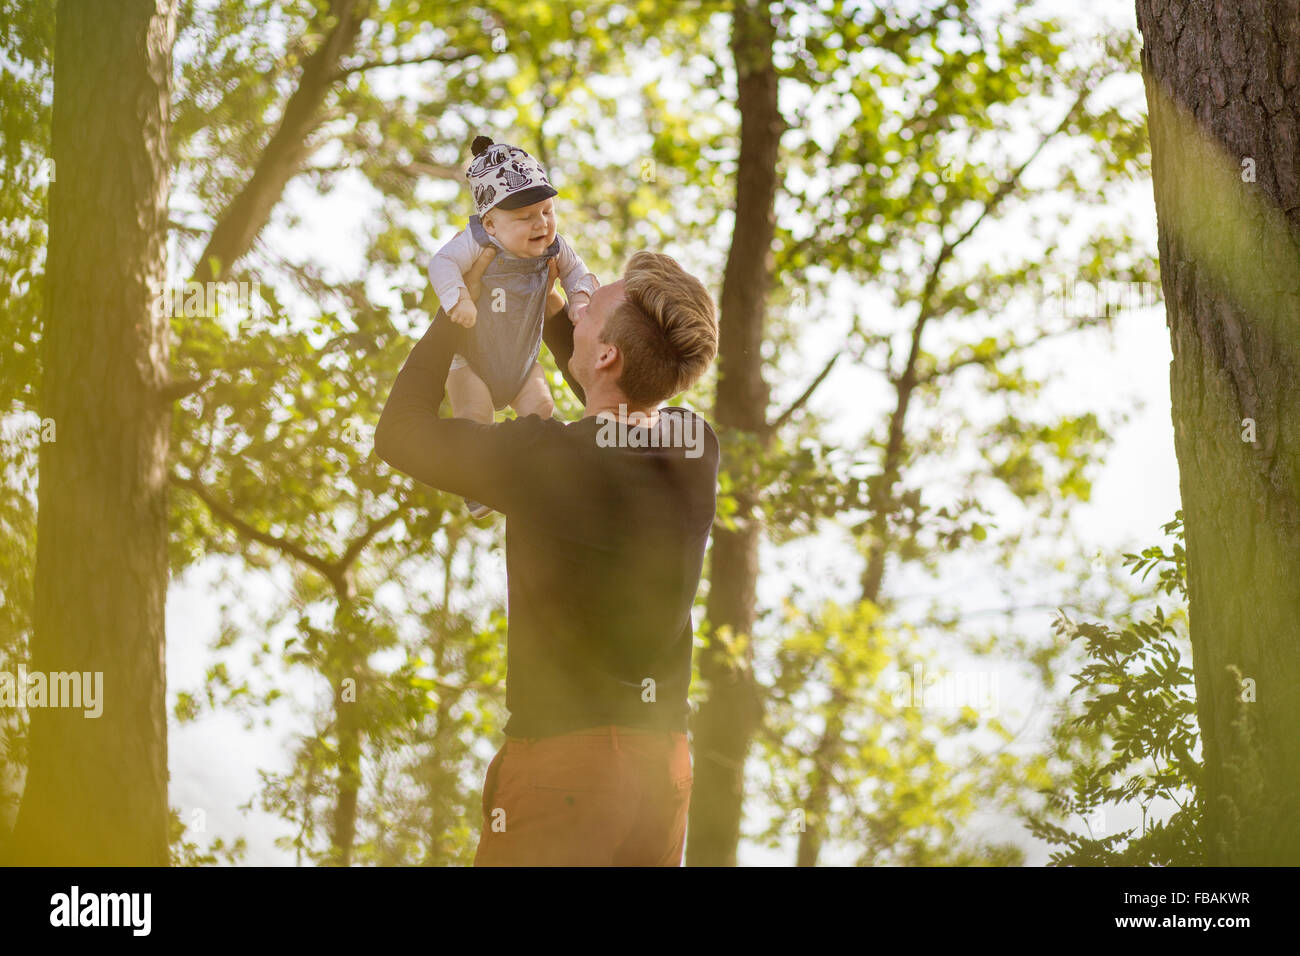 Finland, Uusimaa, Father lifting son (0-1 months) in air - Stock Image